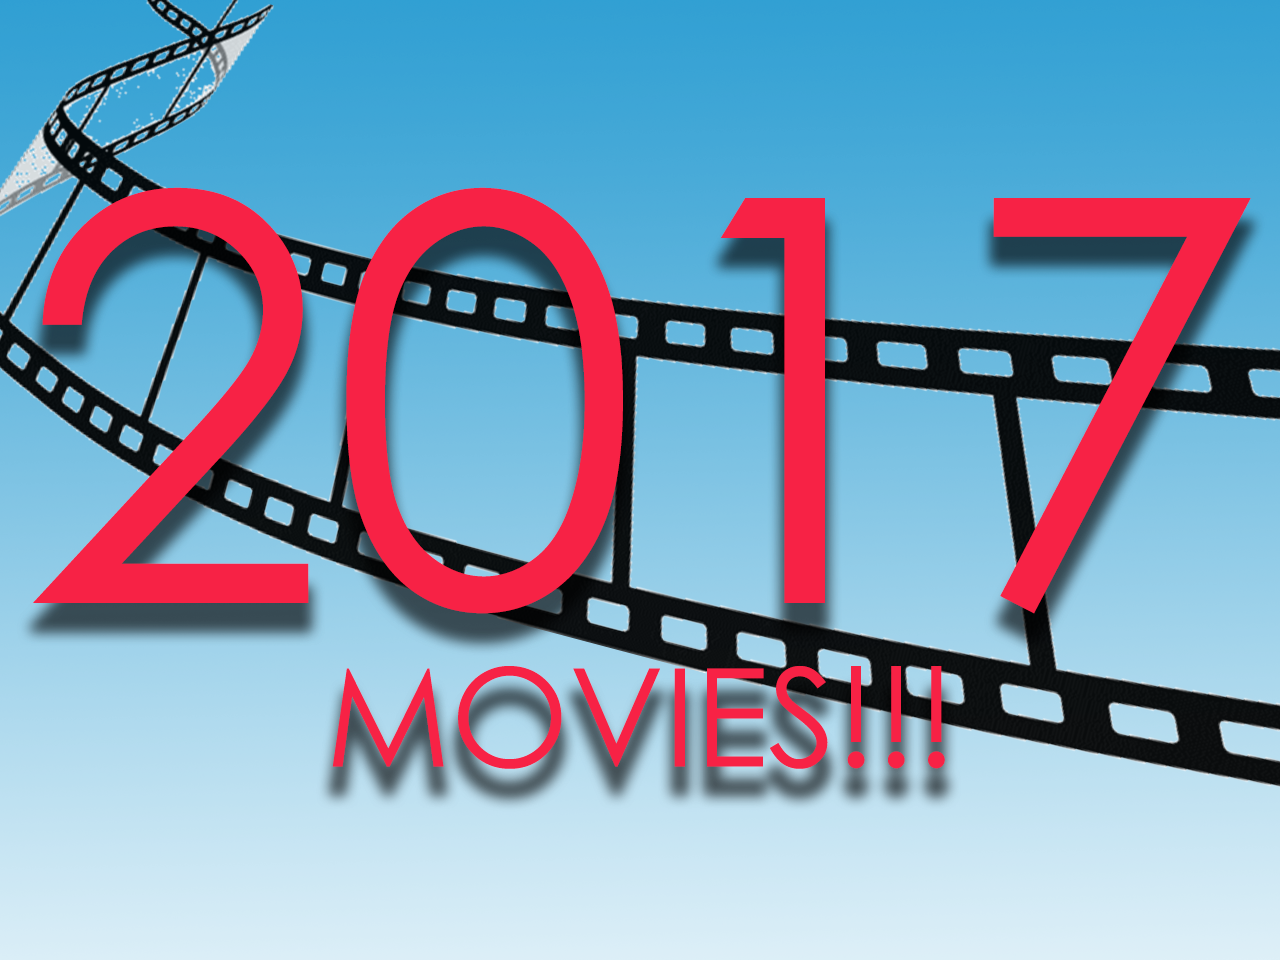 2017 Movies.png